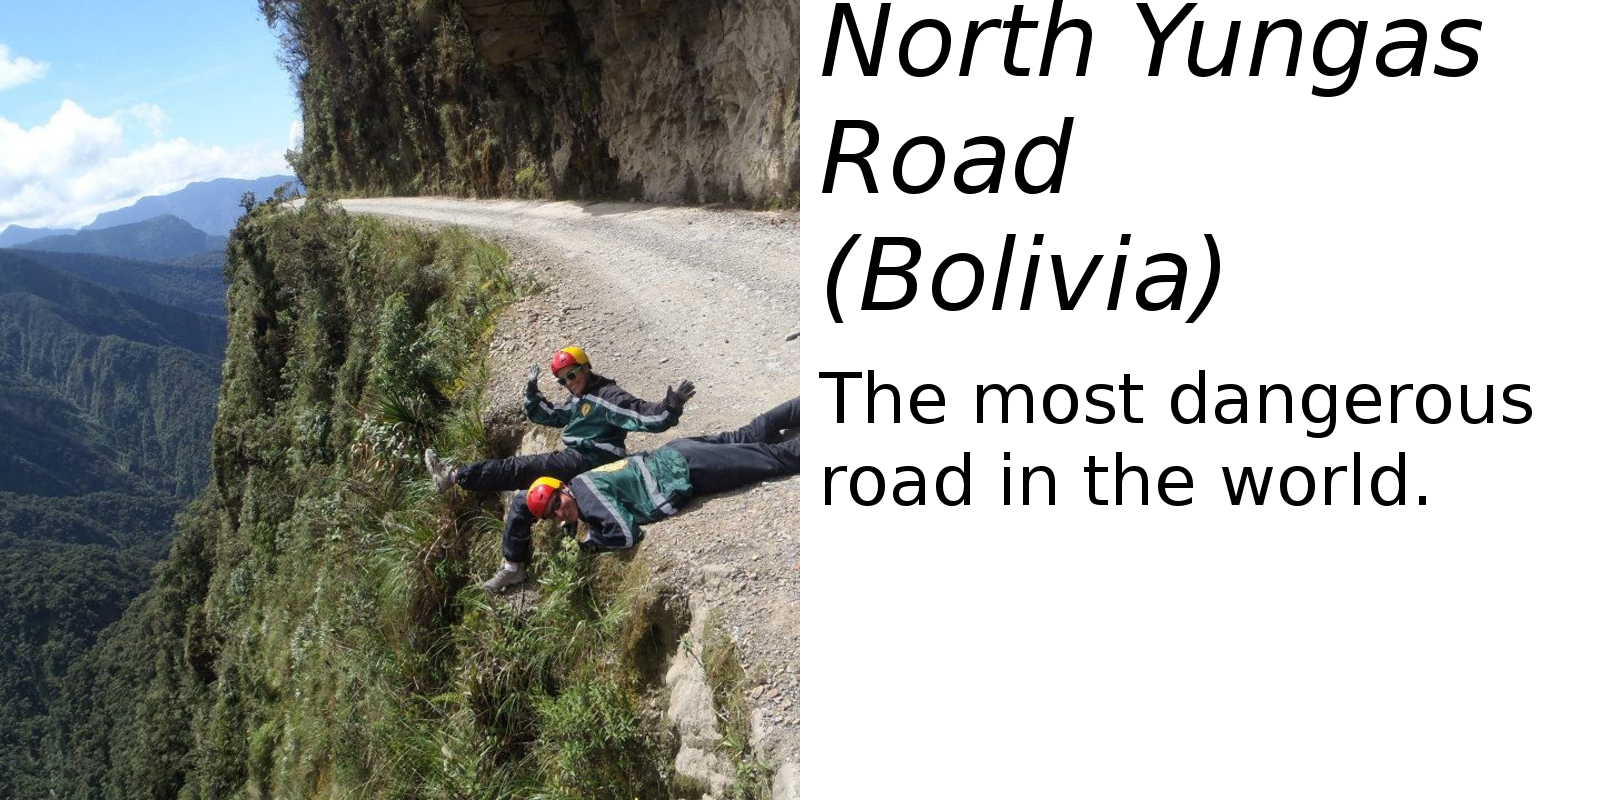 North Yungas Road, Bolivia (description) #2